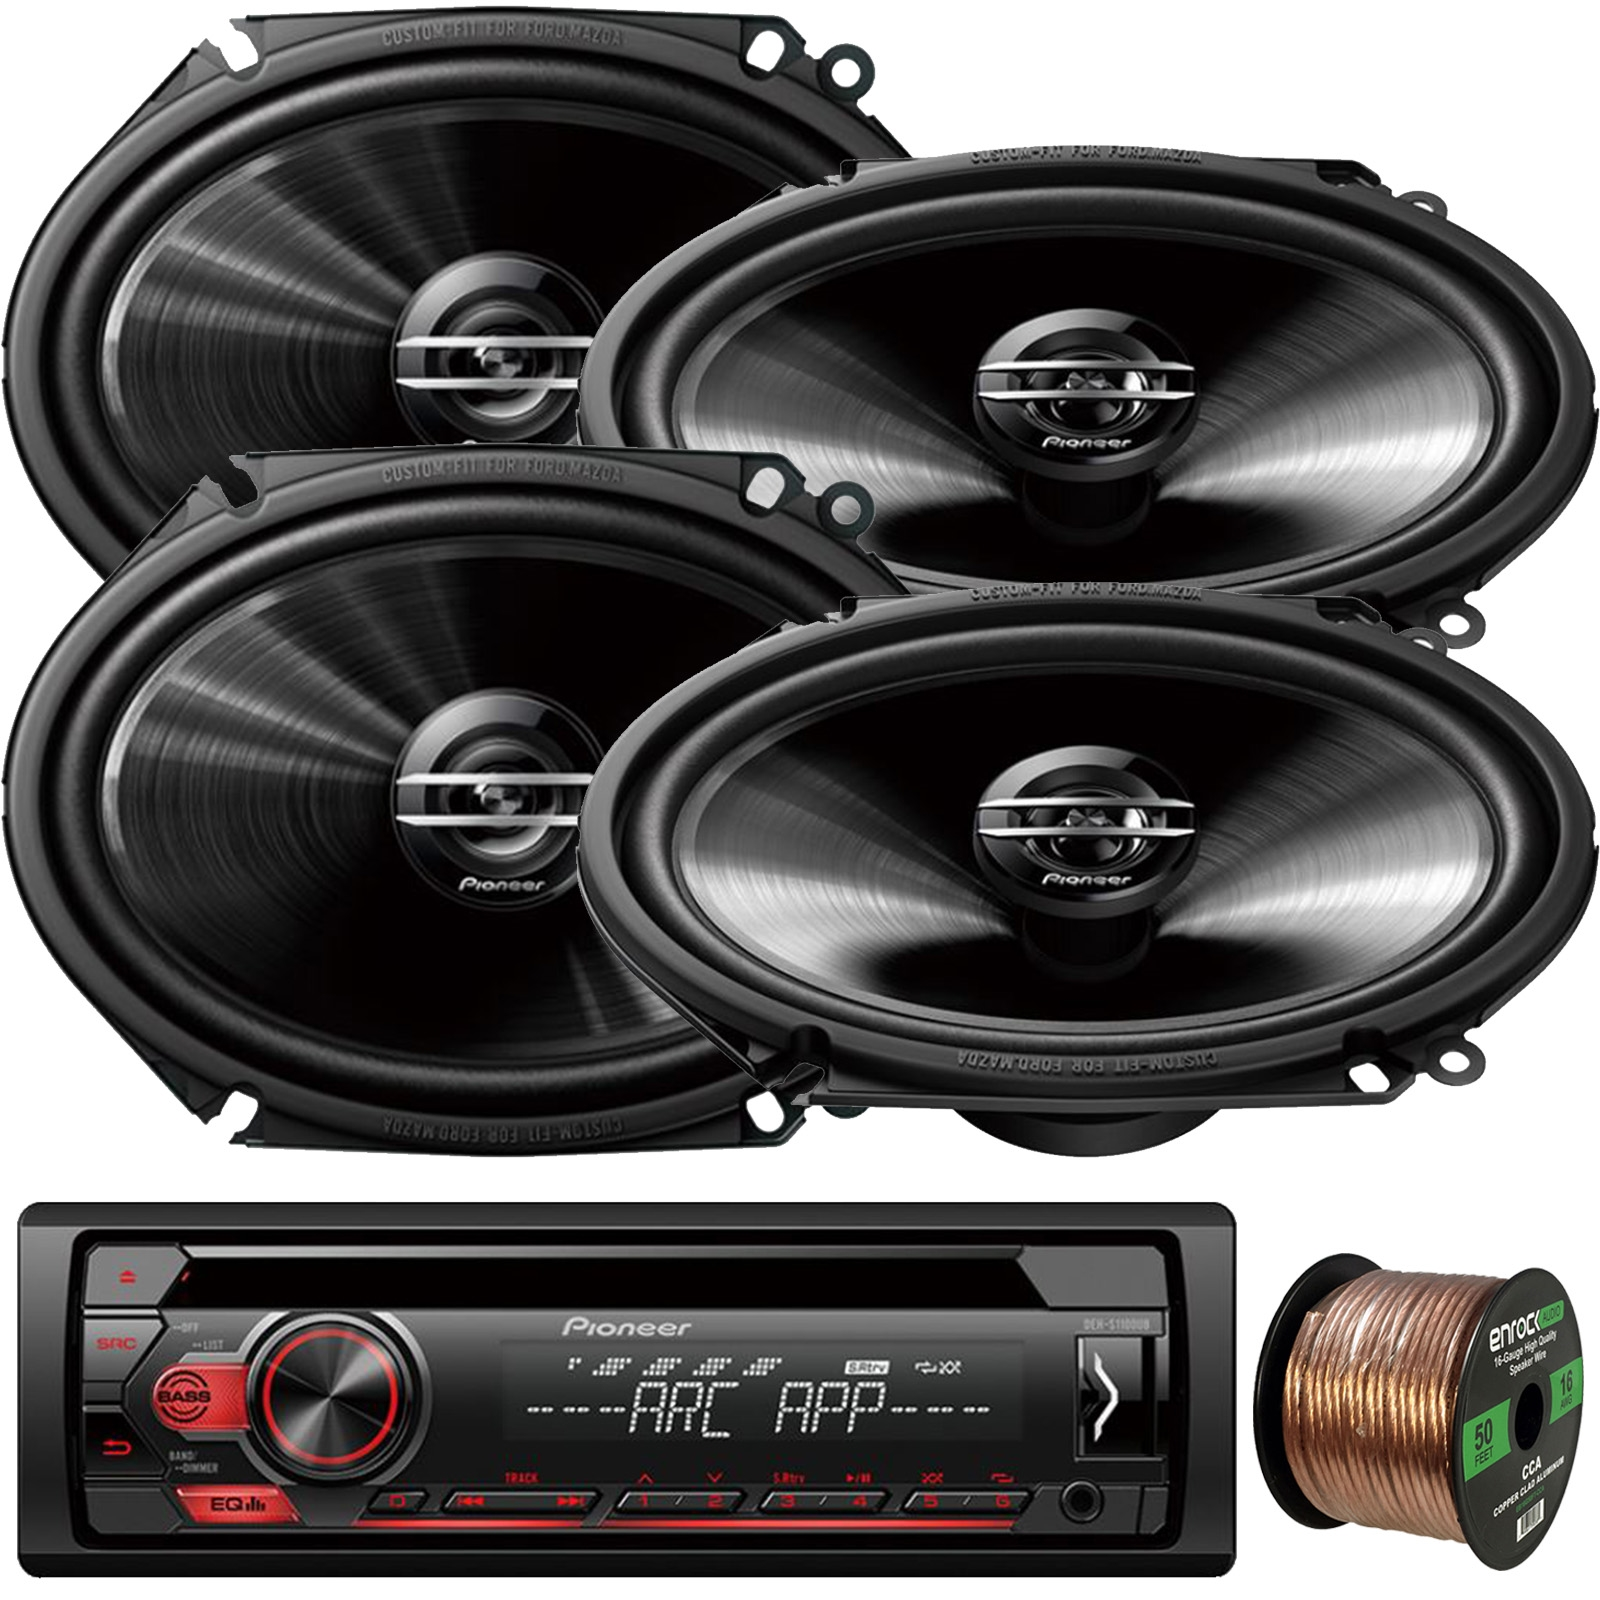 "Pioneer DEH-S1100UB Single-DIN CD Player AM/FM Car Stereo Receiver, 4 x Pioneer G-Series Car Audio 6x8"" 250W 2-Way Car Speakers, Enrock Audio 16-Gauge 50Ft. CCA Speaker Wire"